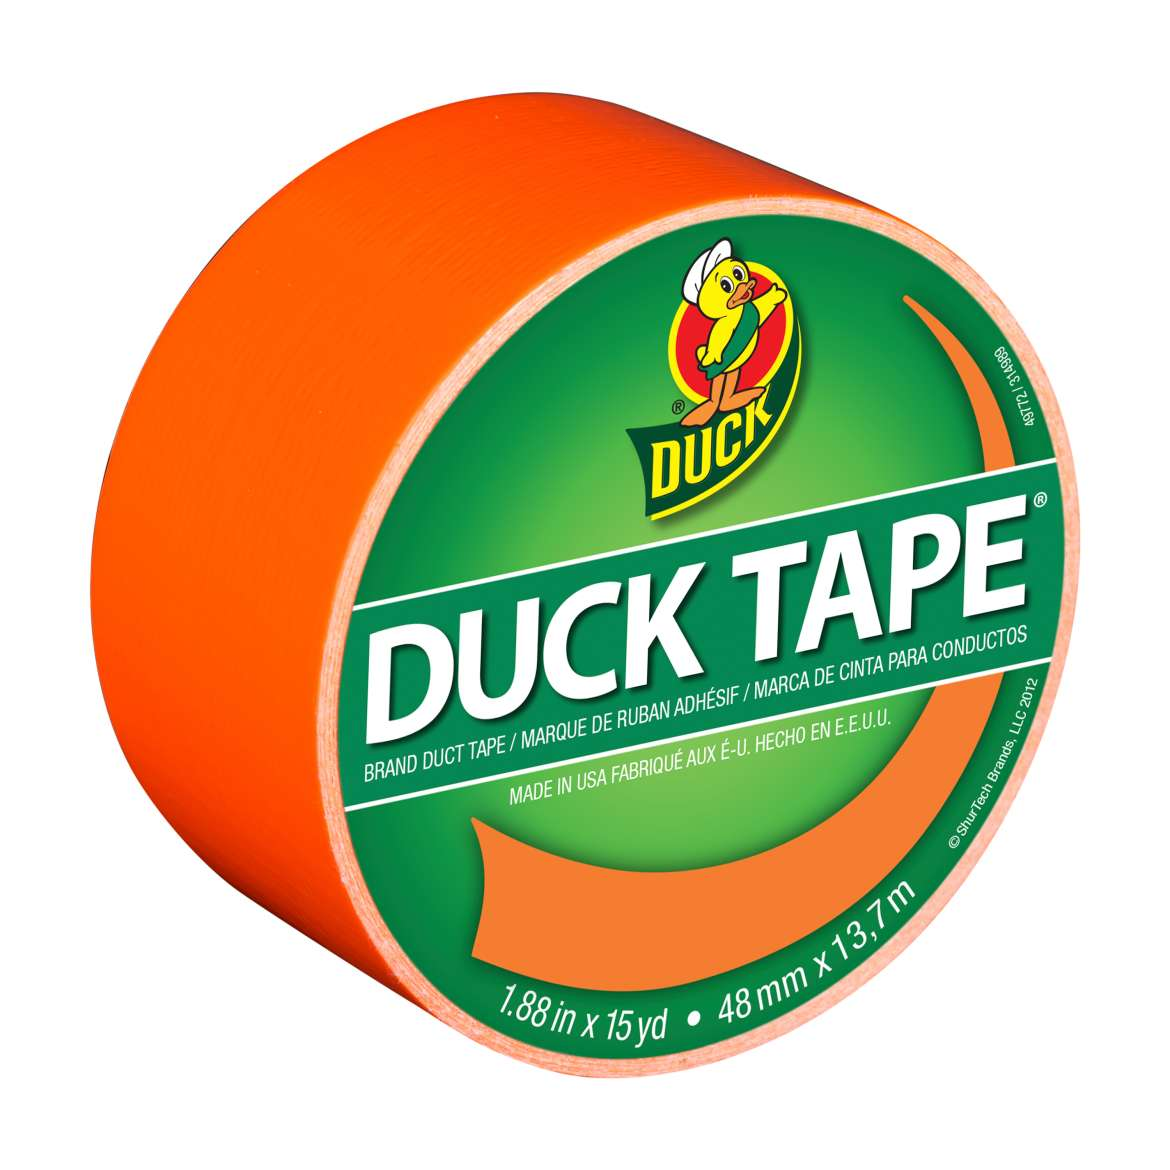 Duck Brand Duct Tape, 1.88 in. x 15 yds., Orange